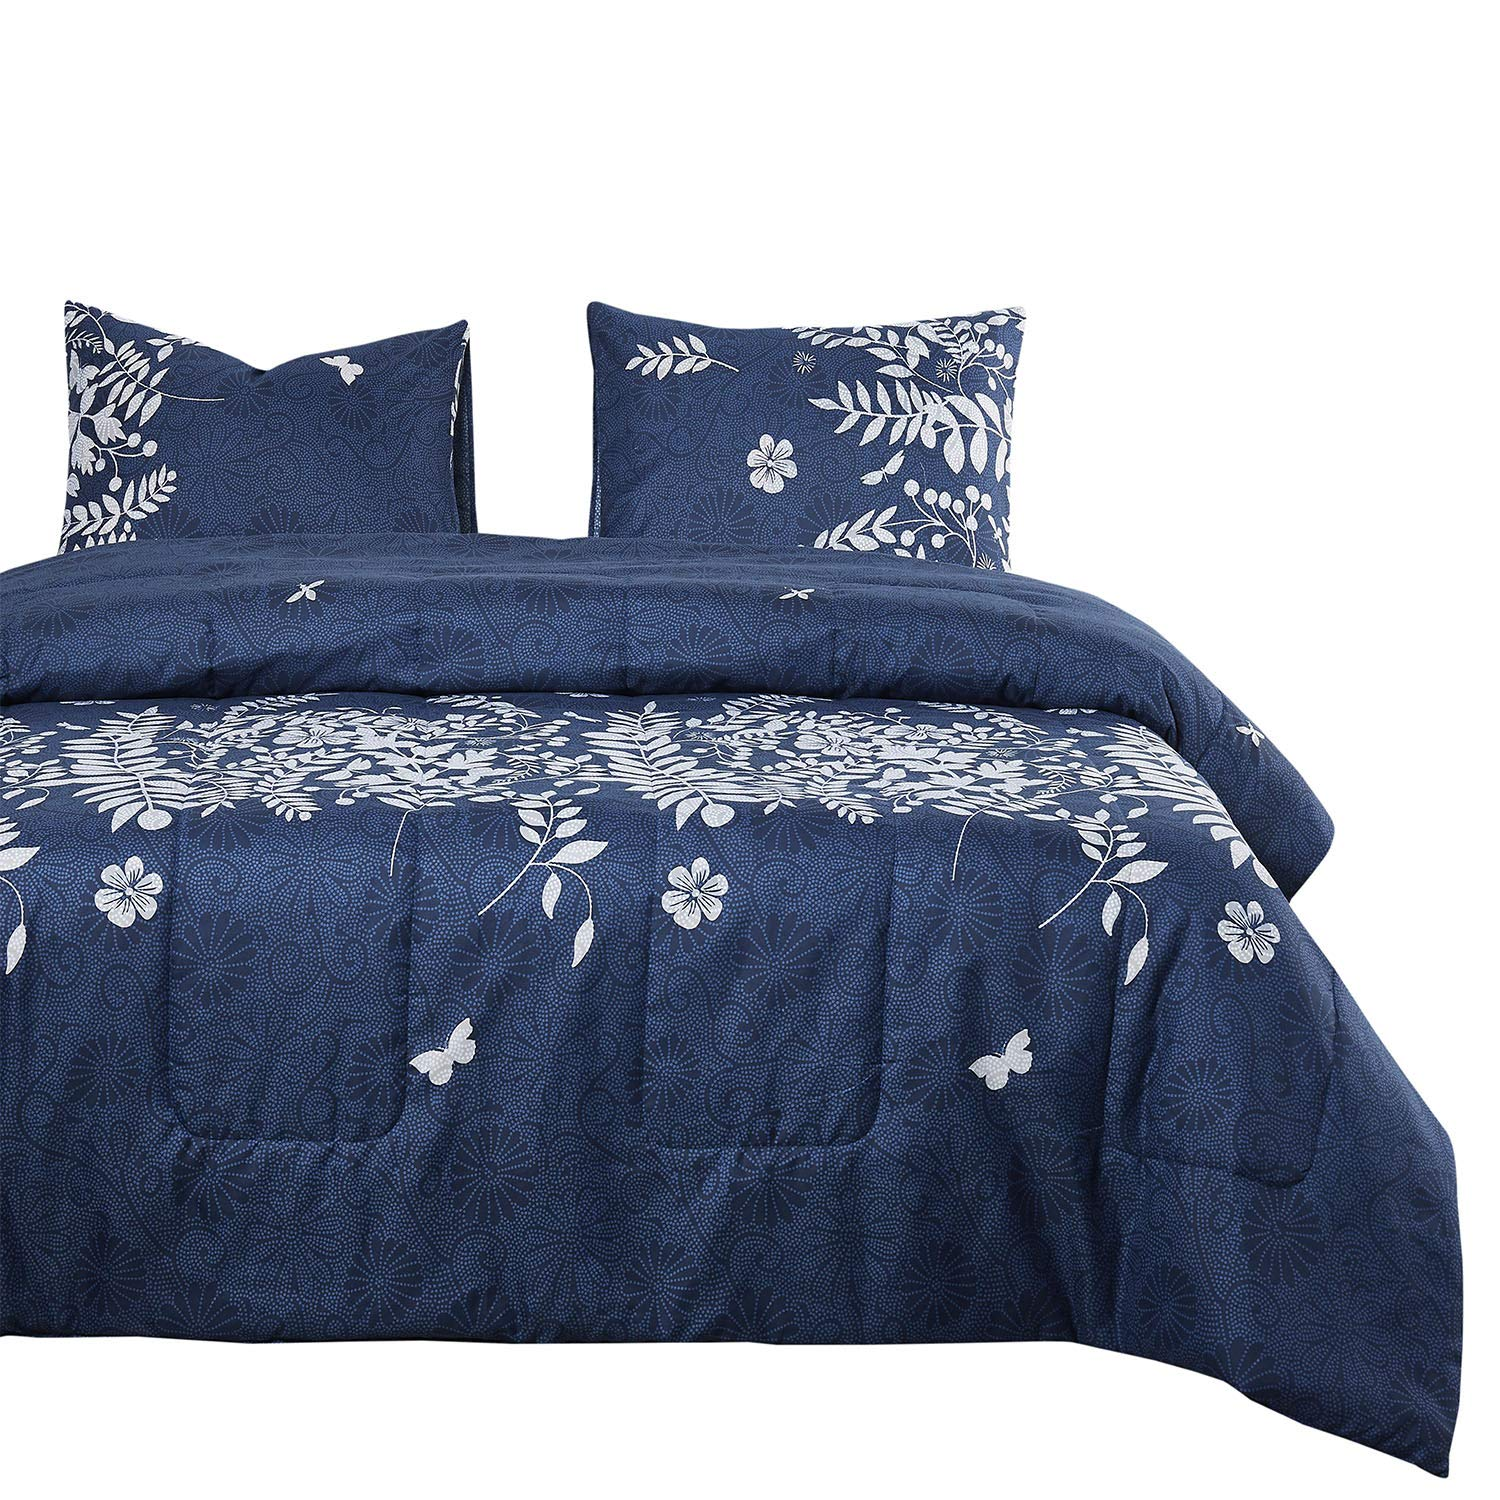 Wake In Cloud - Navy Blue Quilt Set, Gray Grey Floral Flowers Tree Leaves Modern Pattern Printed, Soft Microfiber Bedspread Coverlet Bedding (3pcs, Queen Size)